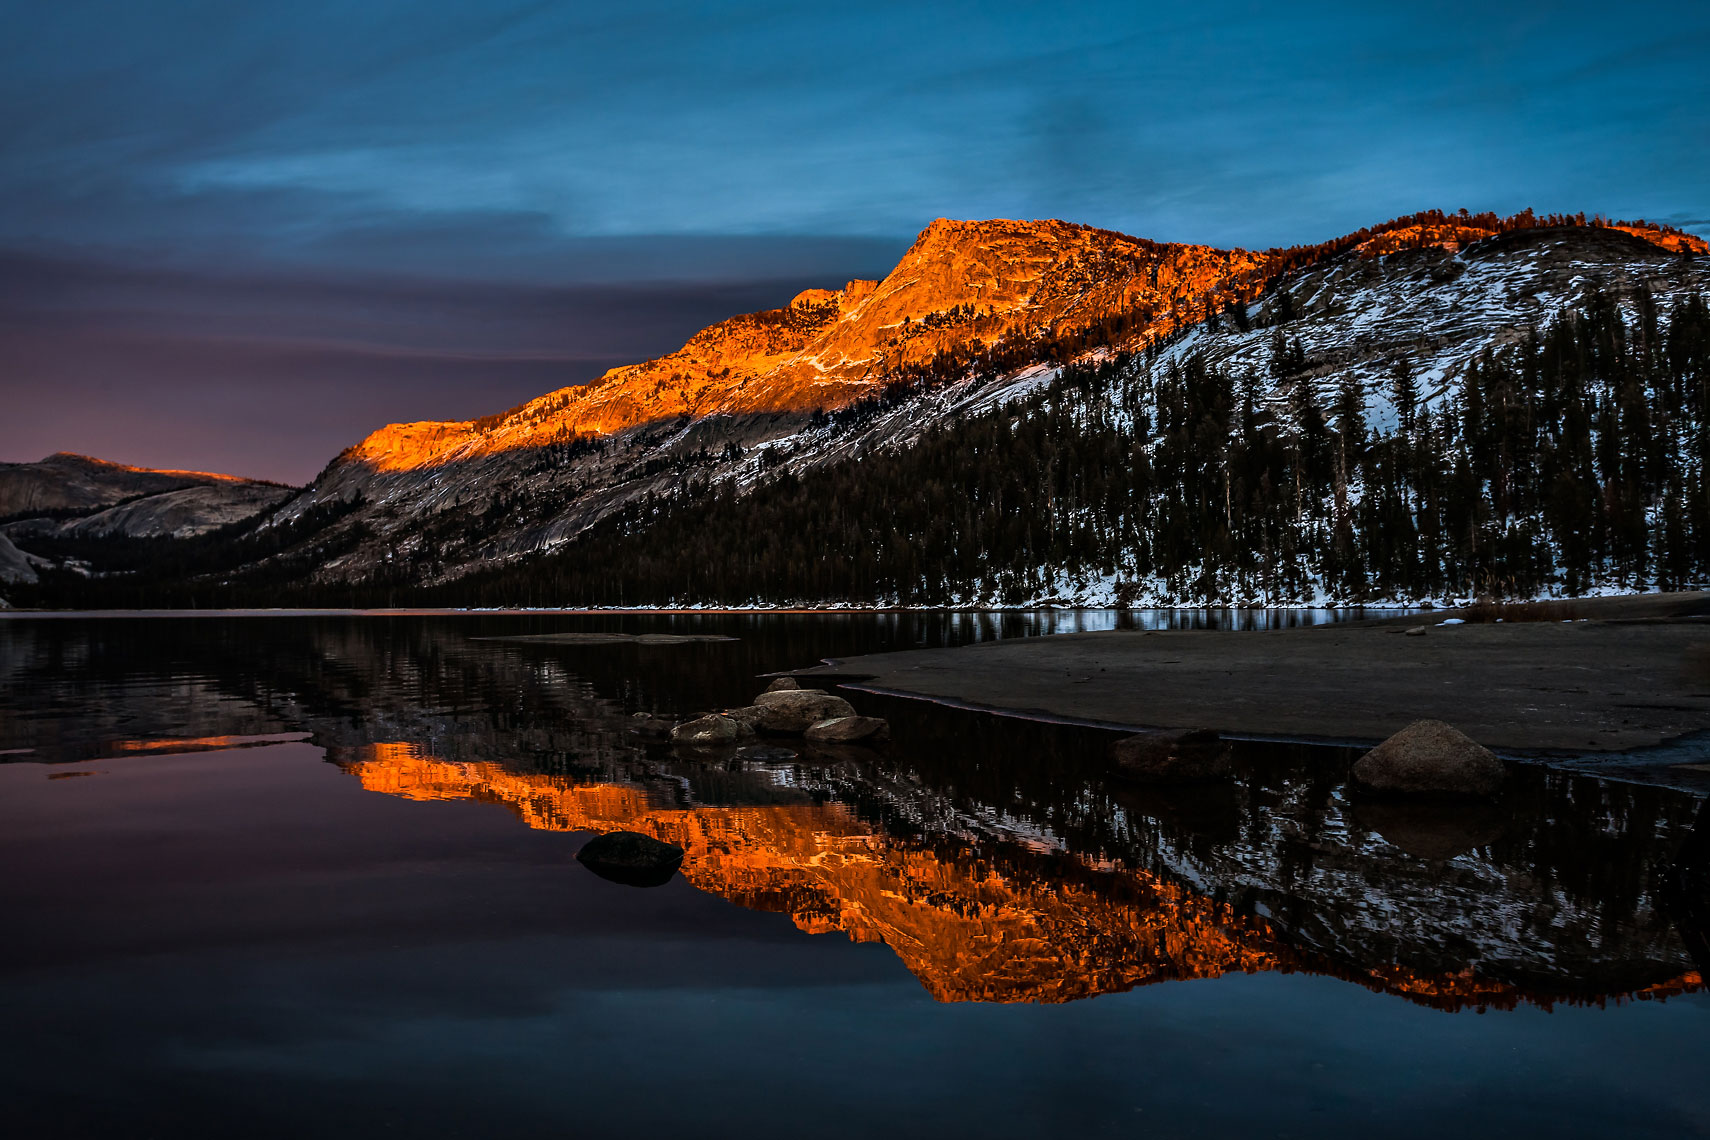 Tenaya Peak Alpenglow Reflection